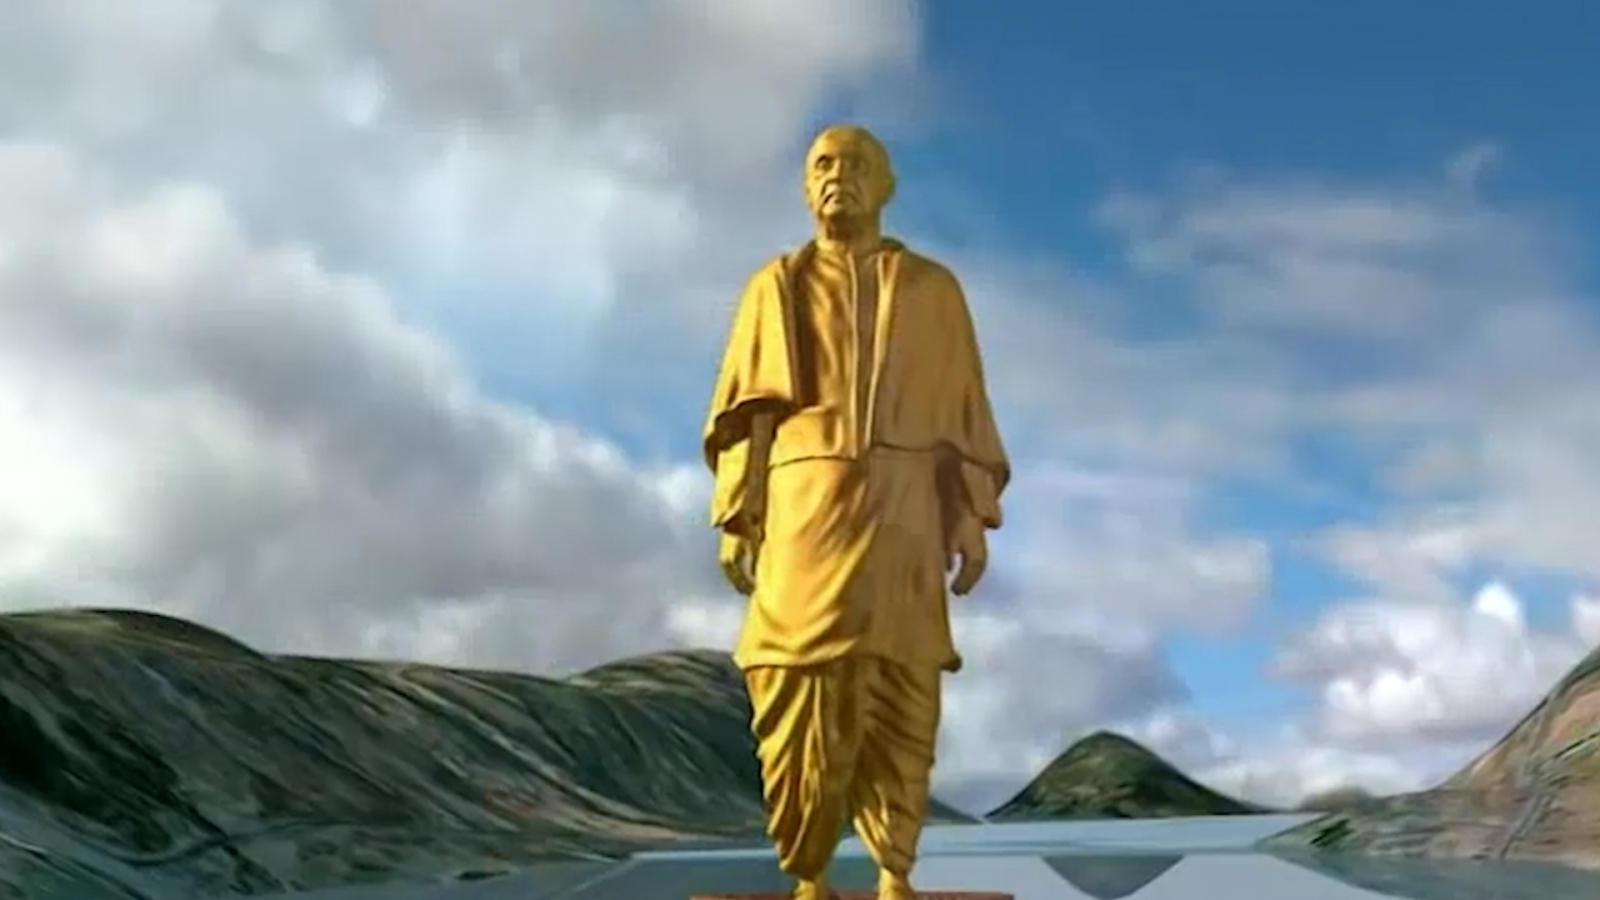 India to Build World's Tallest Statue